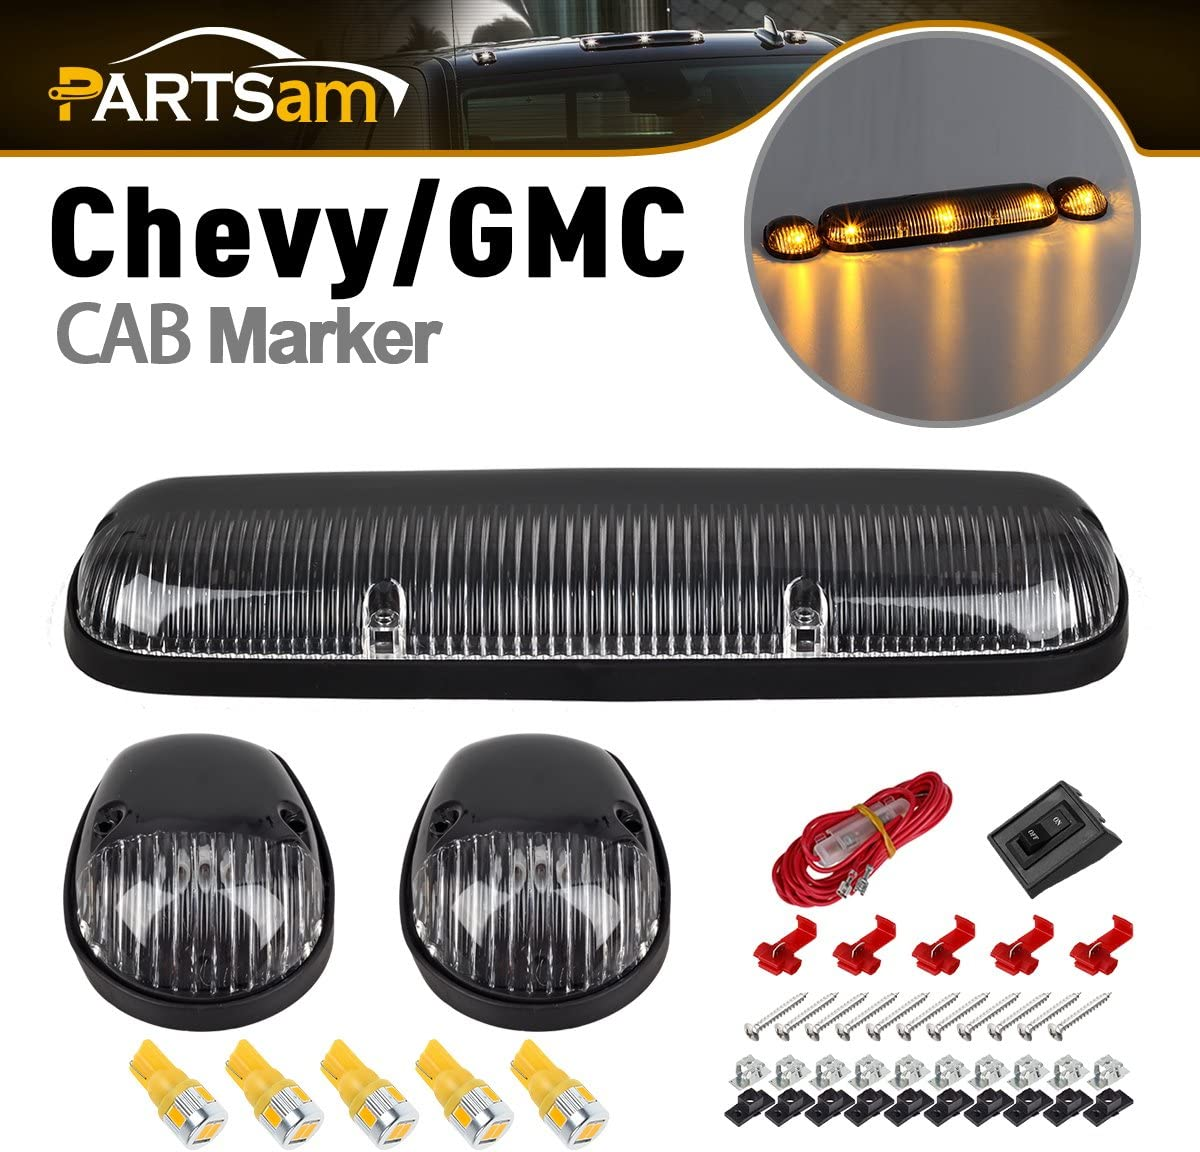 Partsam Cab Light Top Roof Marker Large special price 264155CL Raleigh Mall Running 3P Lights